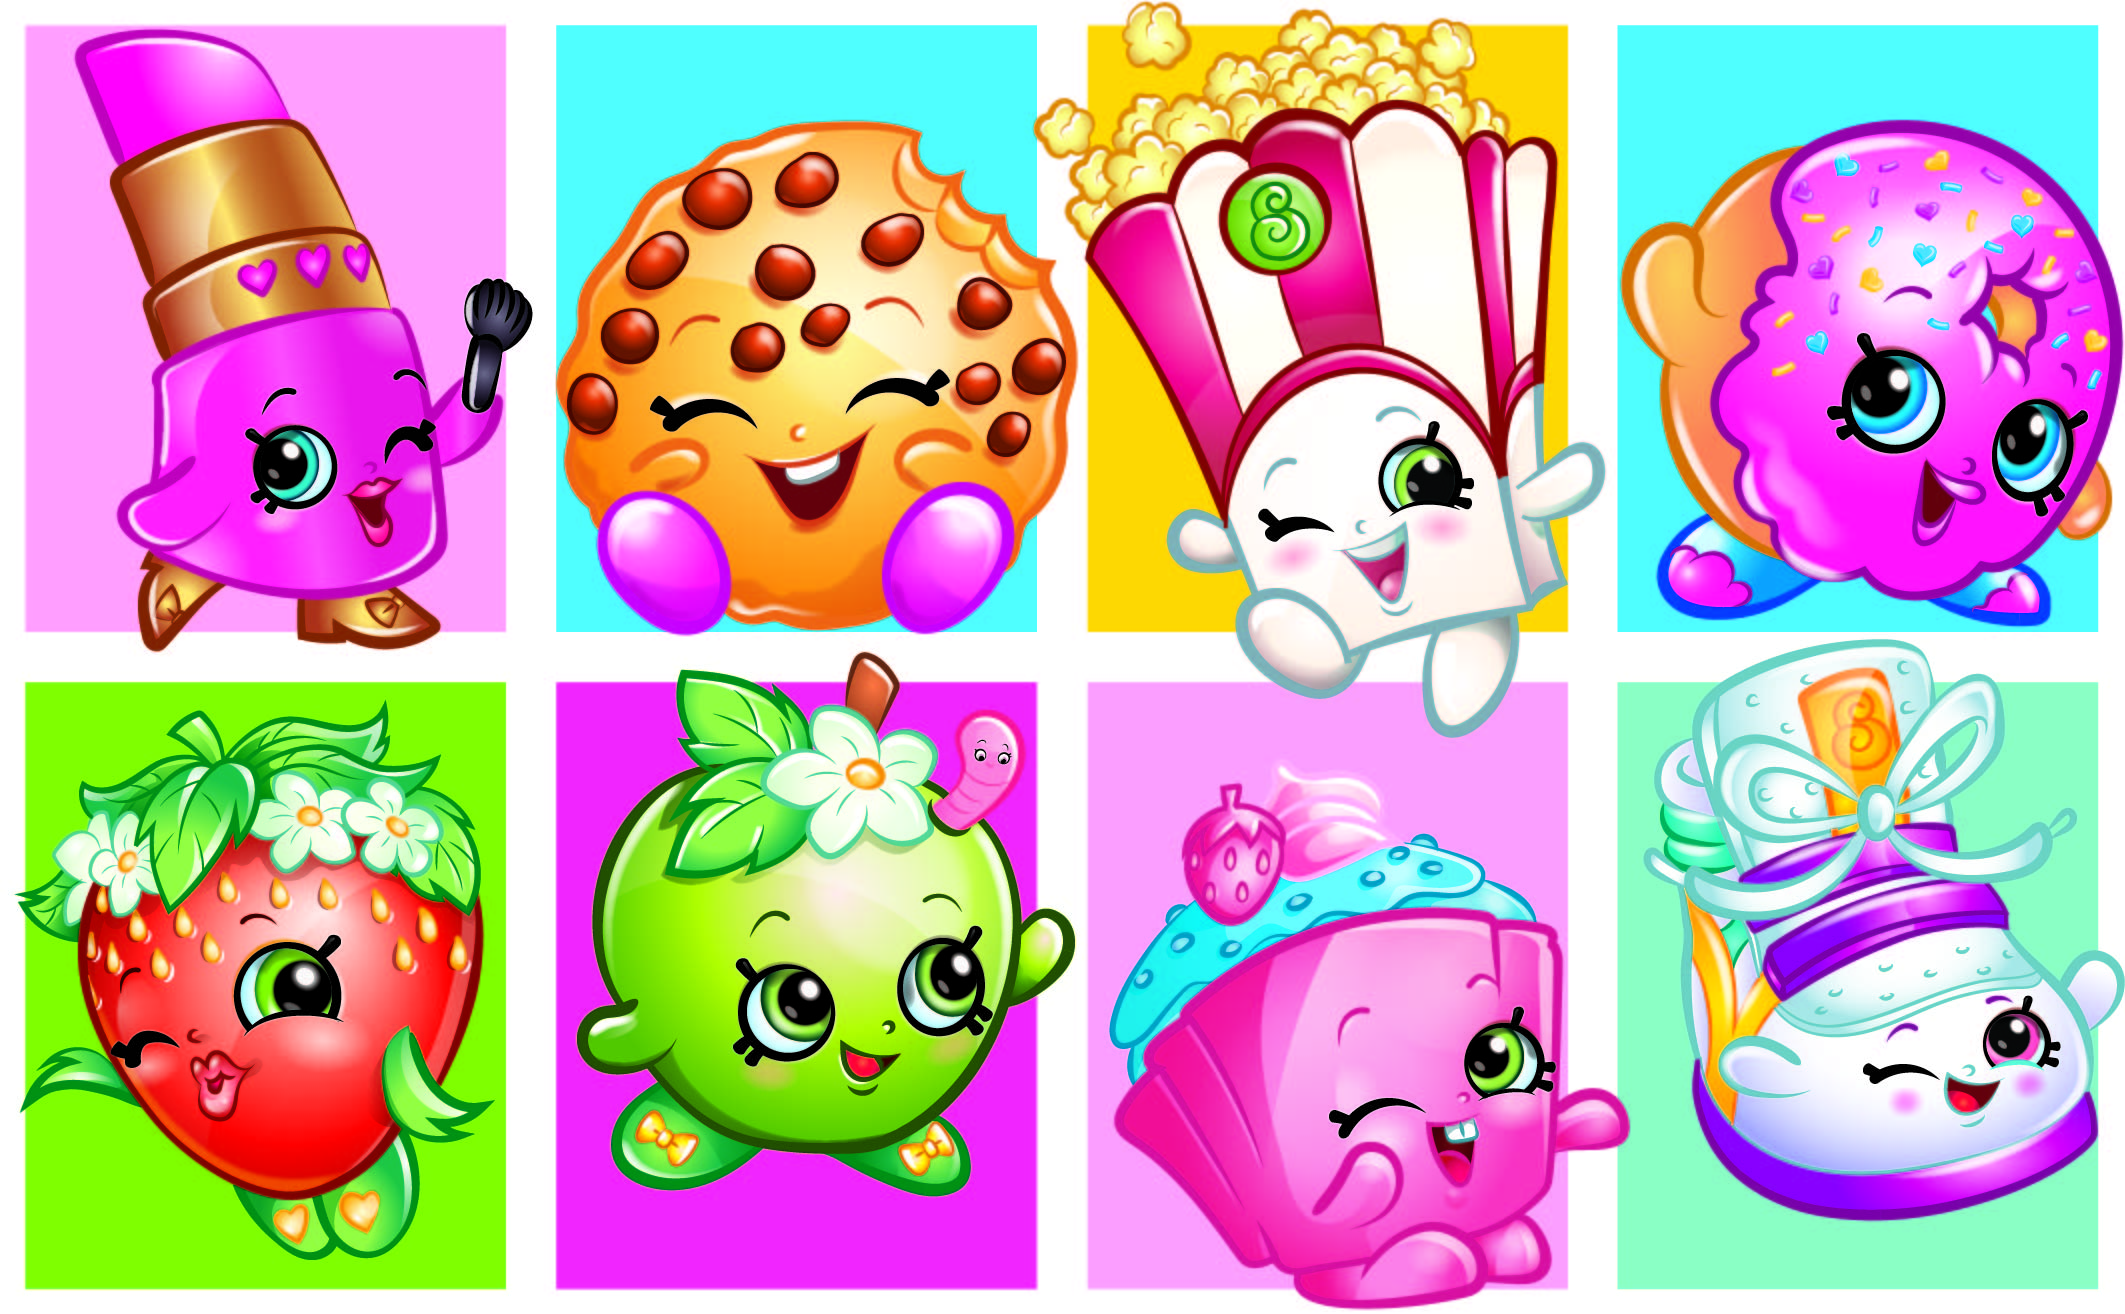 Shopkins all characters pictures diy craft ideas gardening - Shopkins pics ...